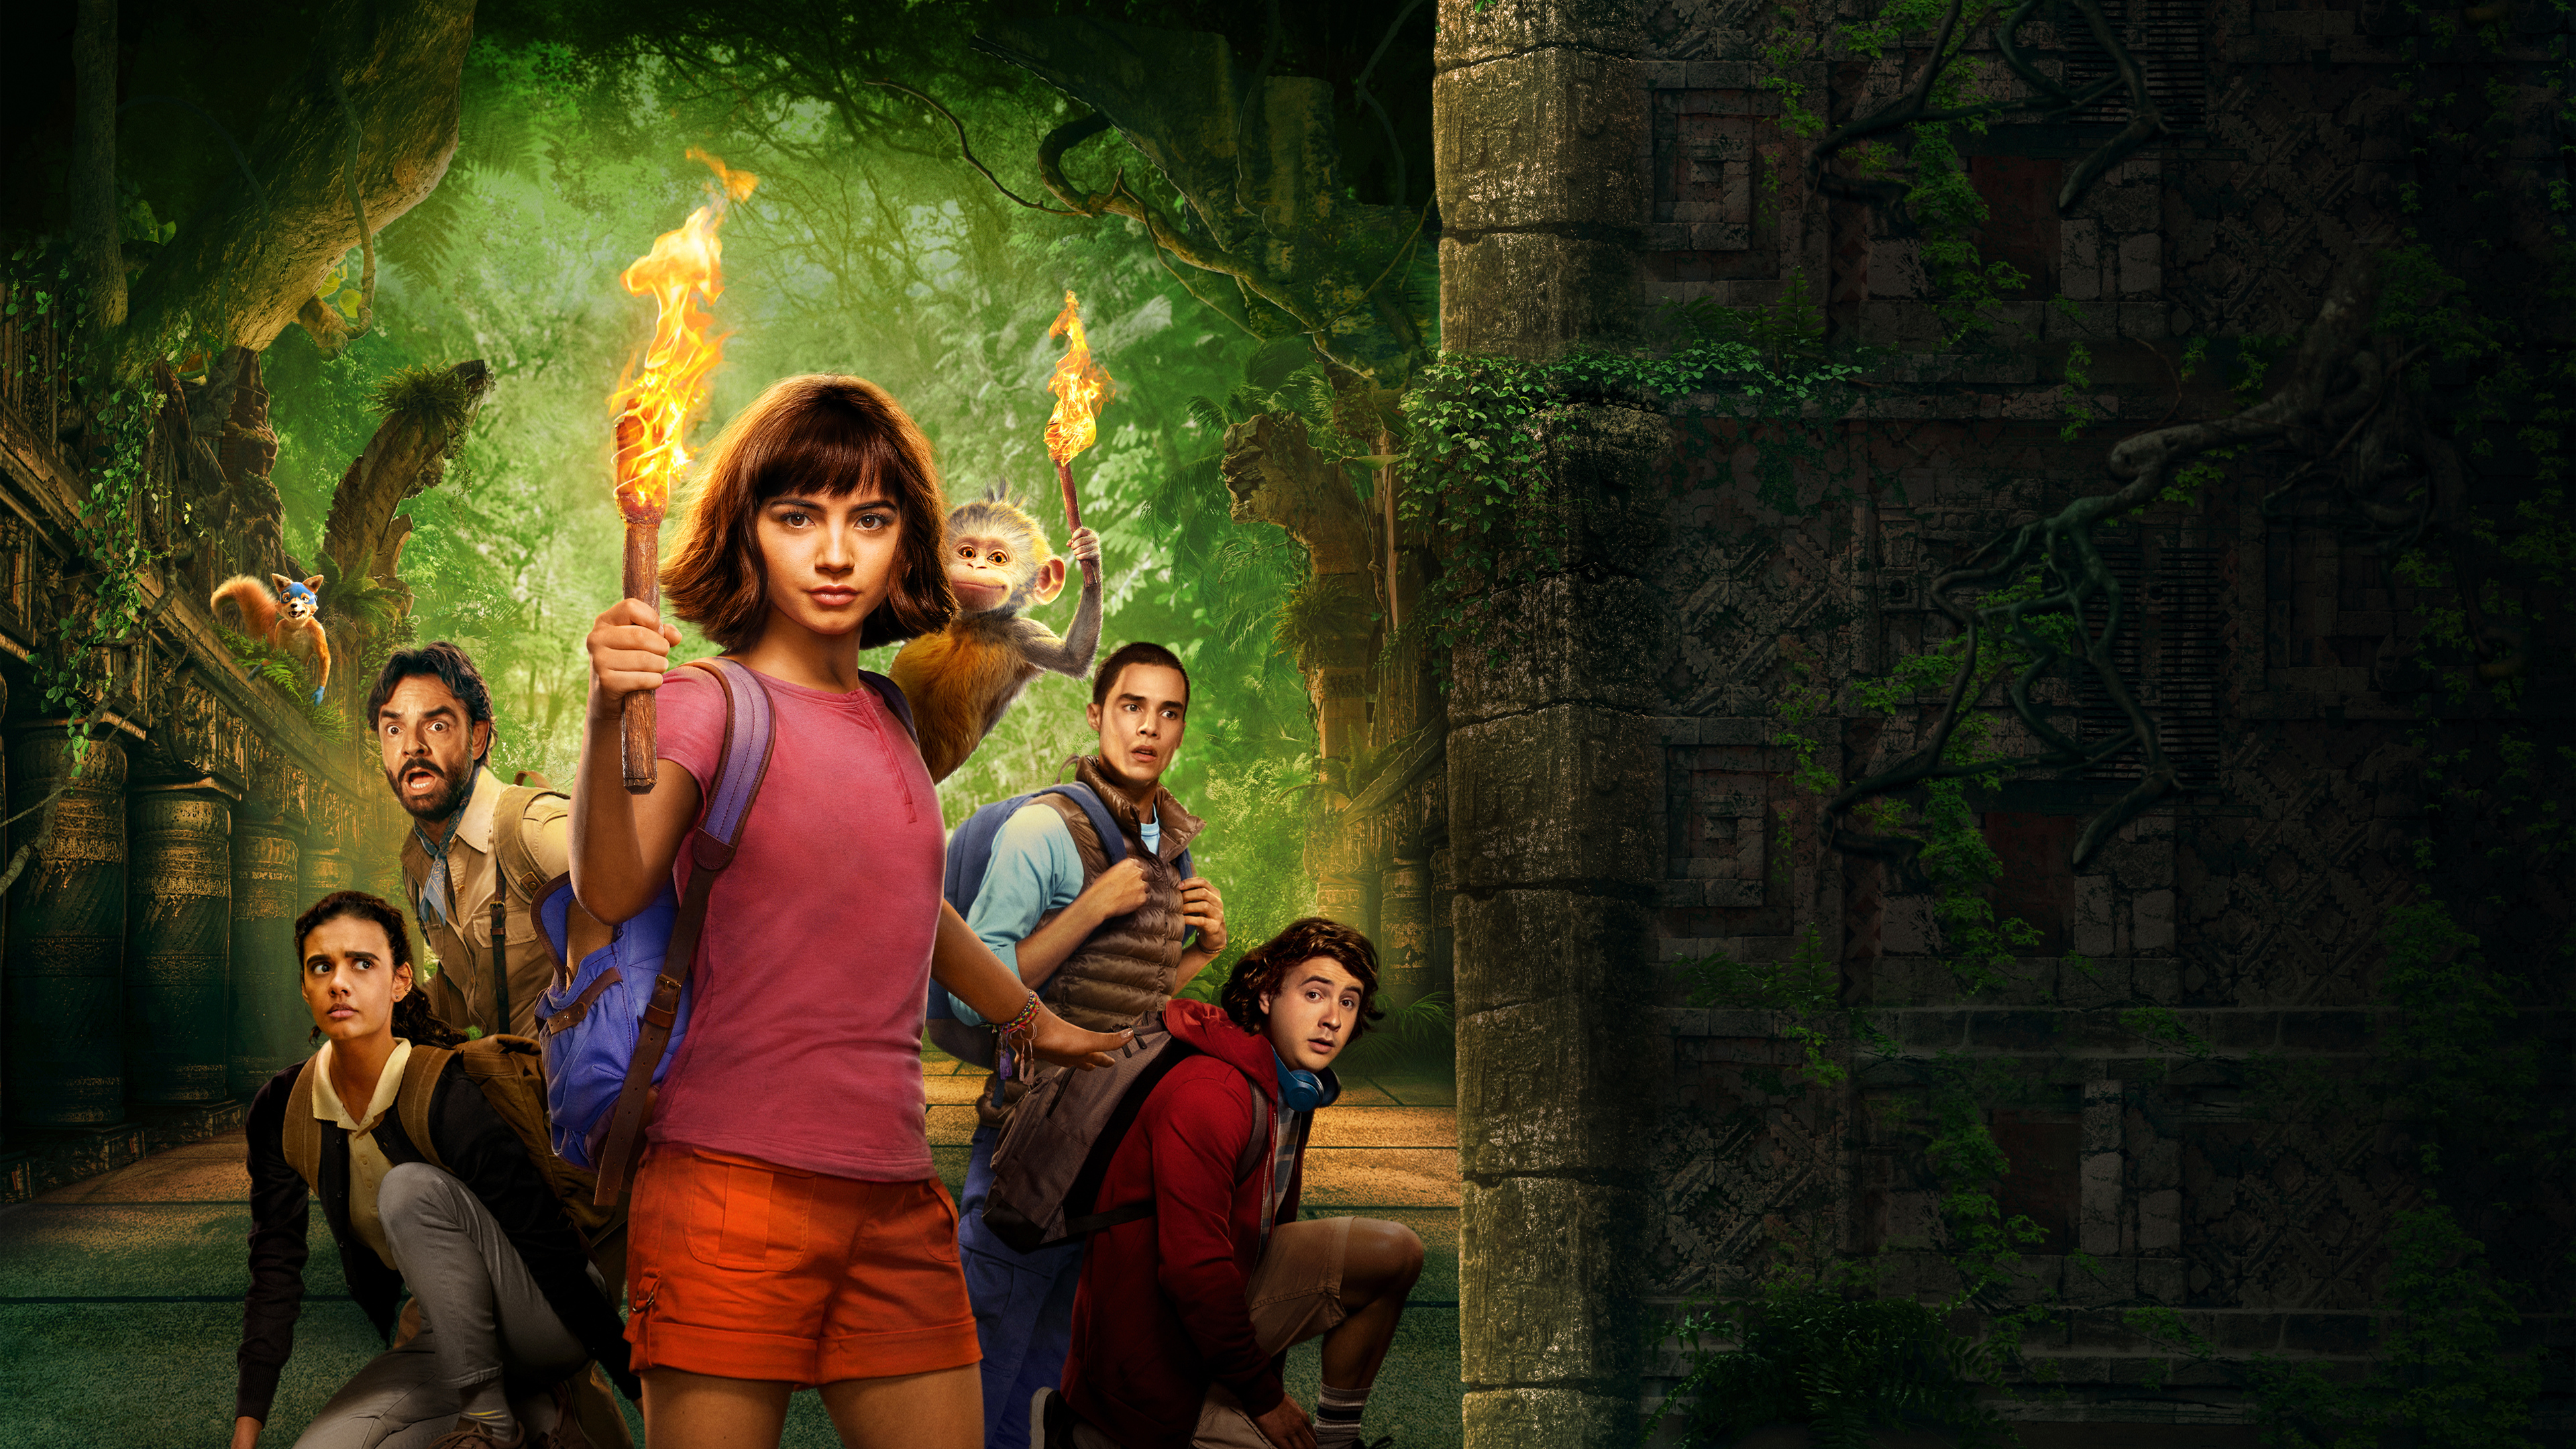 dora the explorer movie 1565055632 - Dora The Explorer Movie - movies wallpapers, hd-wallpapers, dora and the lost city of gold wallpapers, 8k wallpapers, 5k wallpapers, 4k-wallpapers, 2019 movies wallpapers